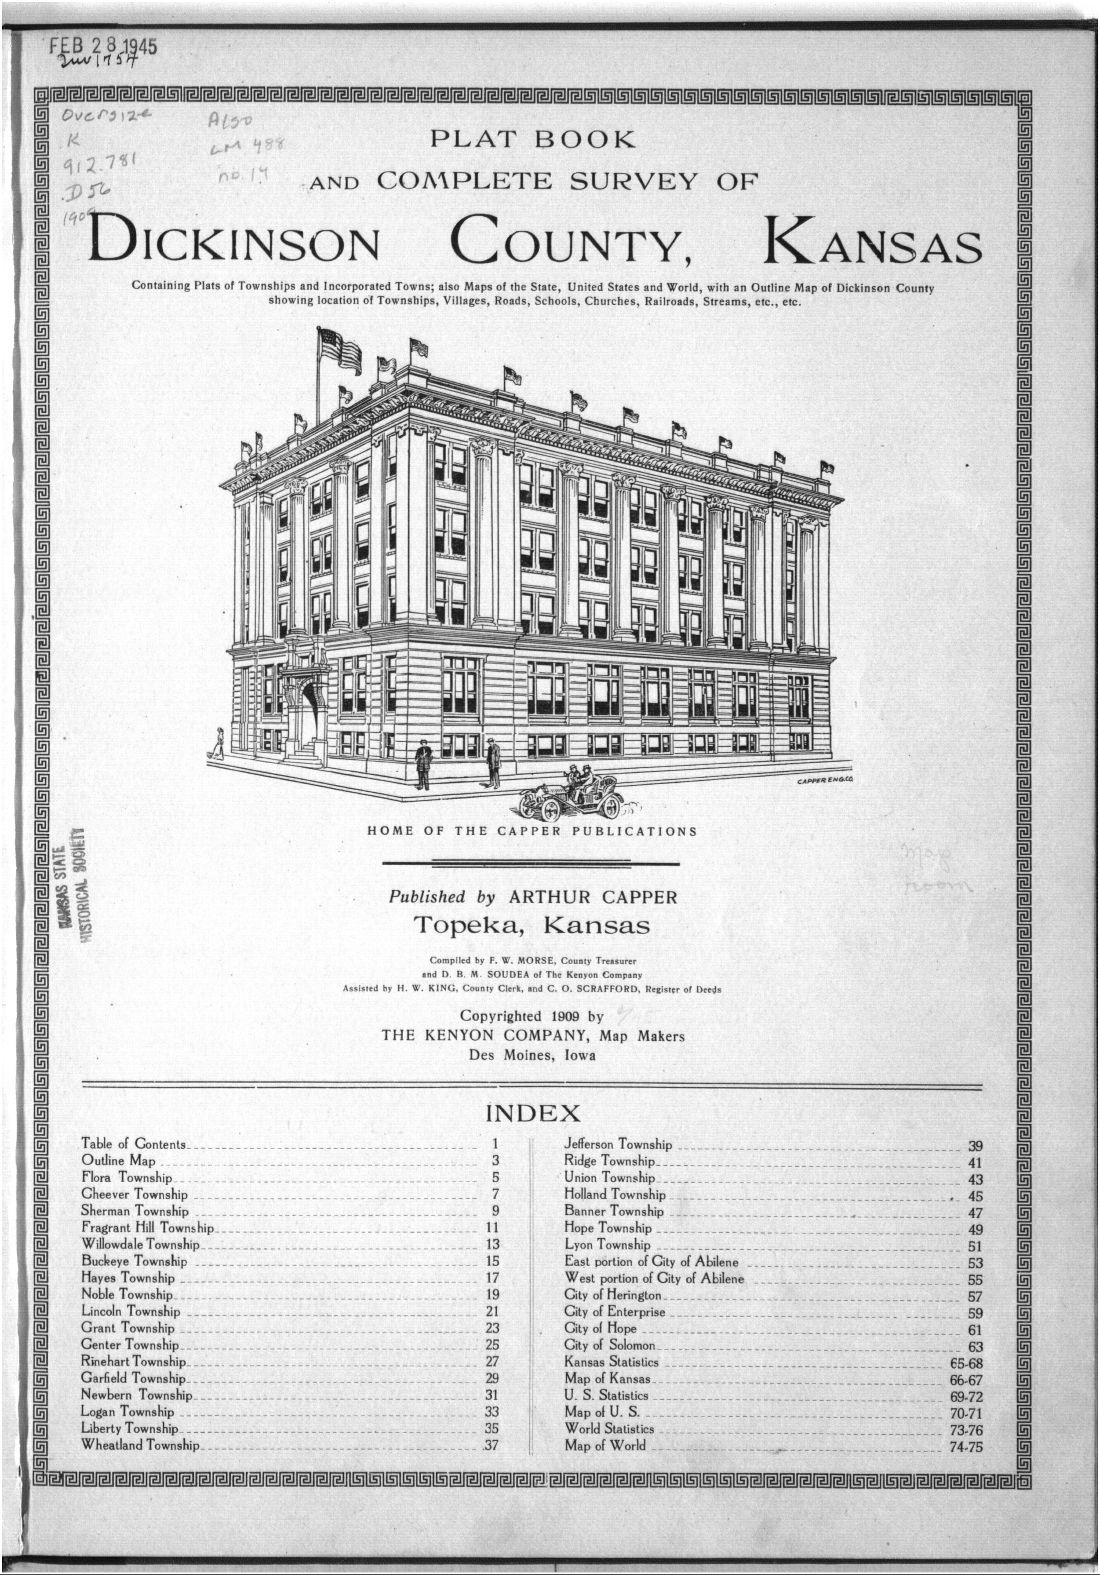 Plat book and complete survey of Dickinson County, Kansas - Title Page